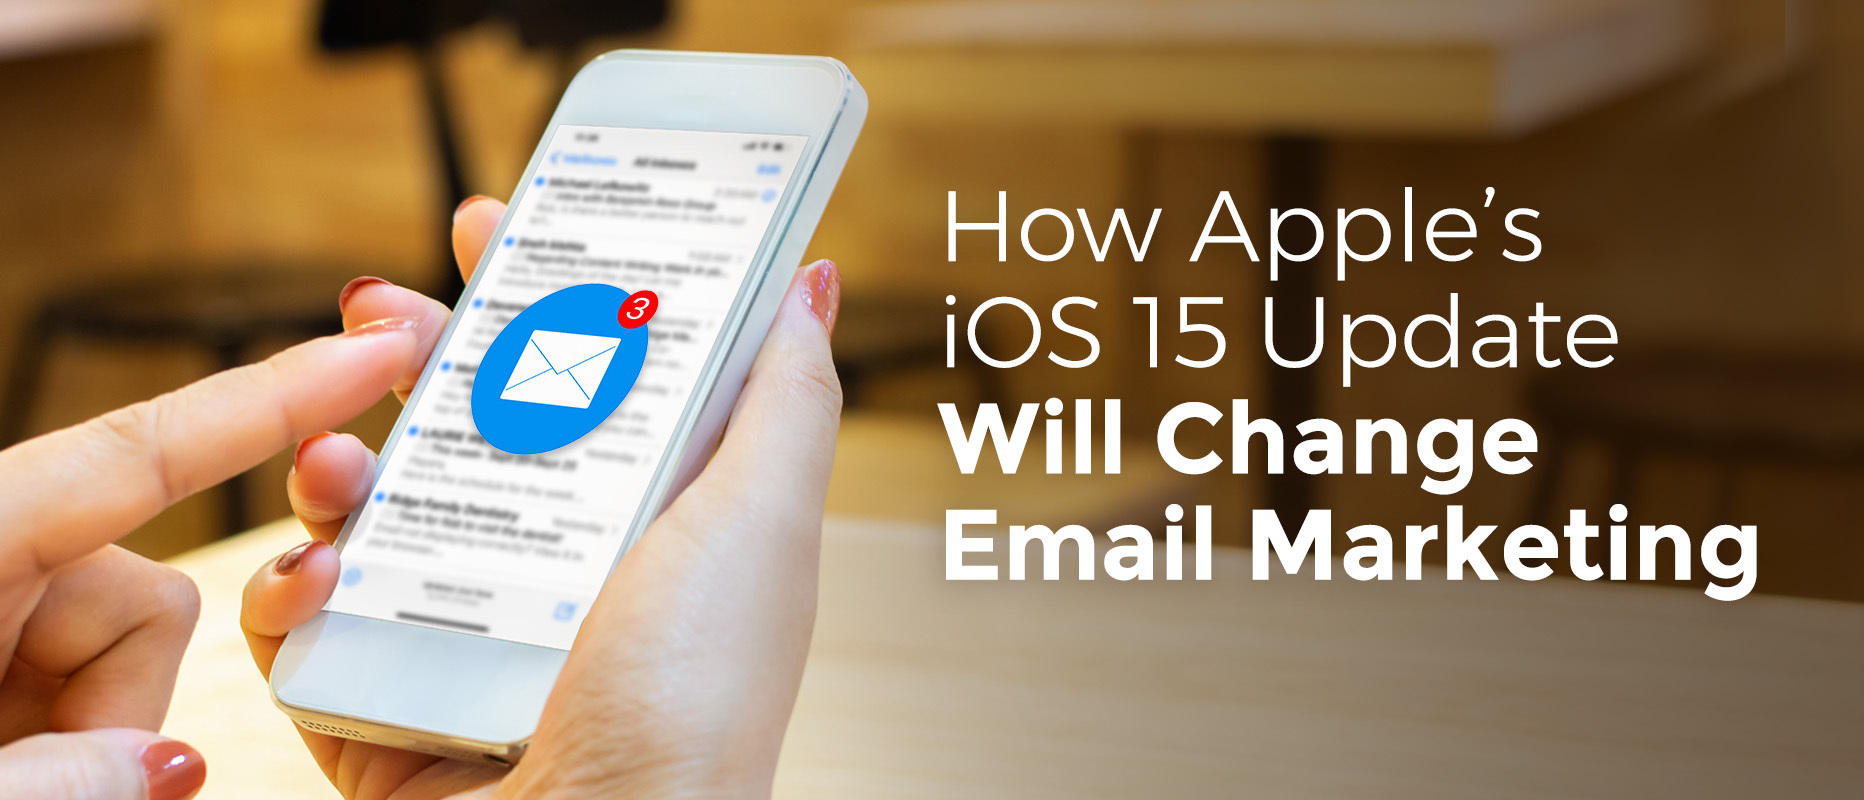 How Apple's iOS 15 Update  Will Change Email Marketing